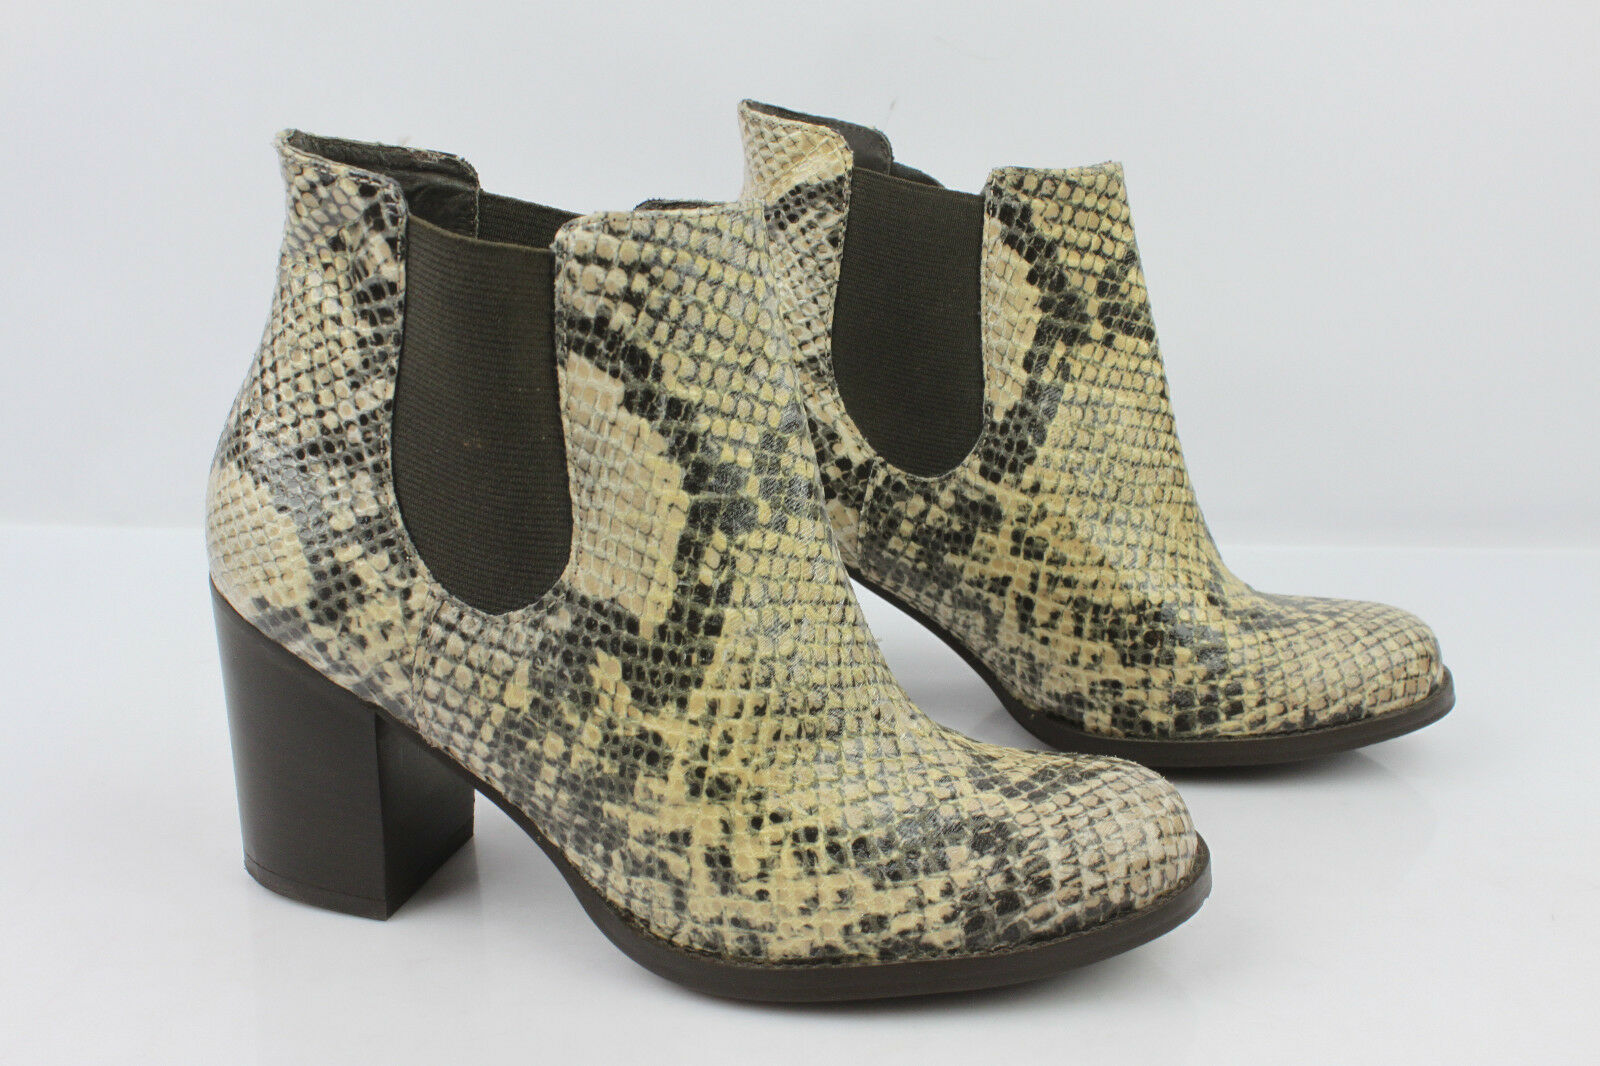 Boots Booties TEXTO Way Python Snake T 36 TOP CONDITION